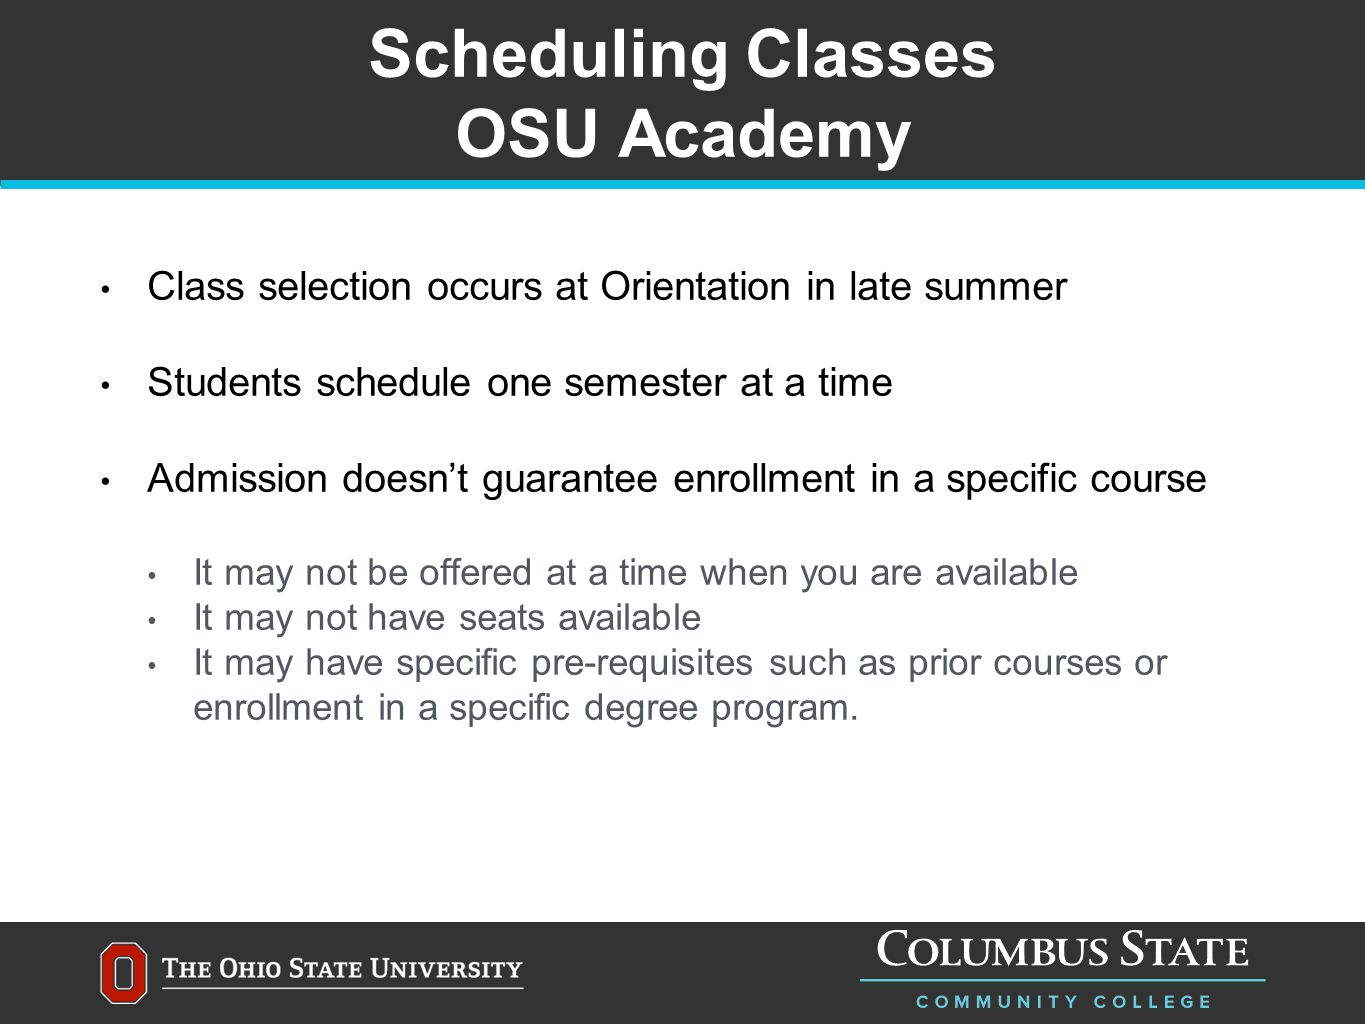 Scheduling Classes OSU Academy Class selection occurs at Orientation in late summer Students schedule one semester at a time Admission doesn't guarantee enrollment in a specific course It may not be offered at a time when you are available It may not have seats available It may have specific pre-requisites such as prior courses or enrollment in a specific degree program.